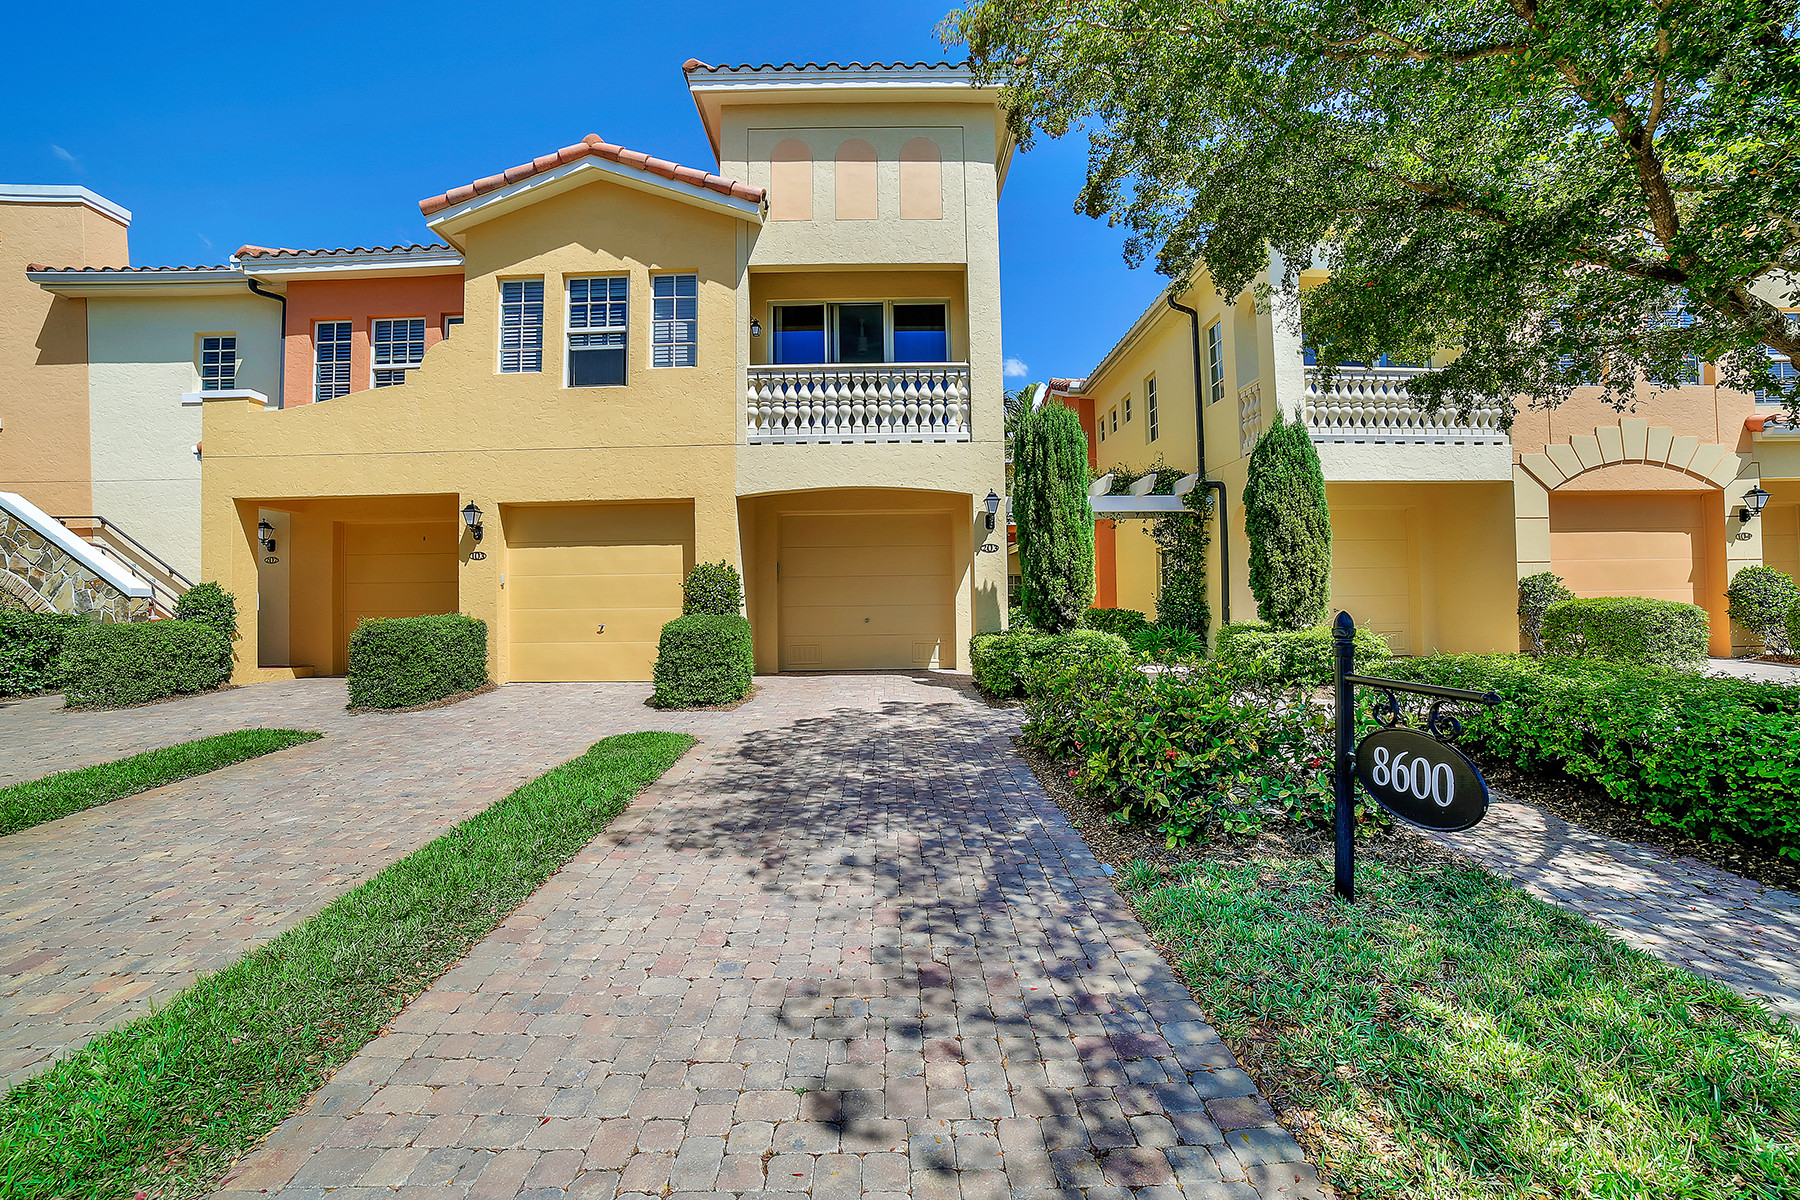 Condominium for Sale at RAPALLO 8600 Via Rapallo Dr 103, Estero, Florida 33928 United States